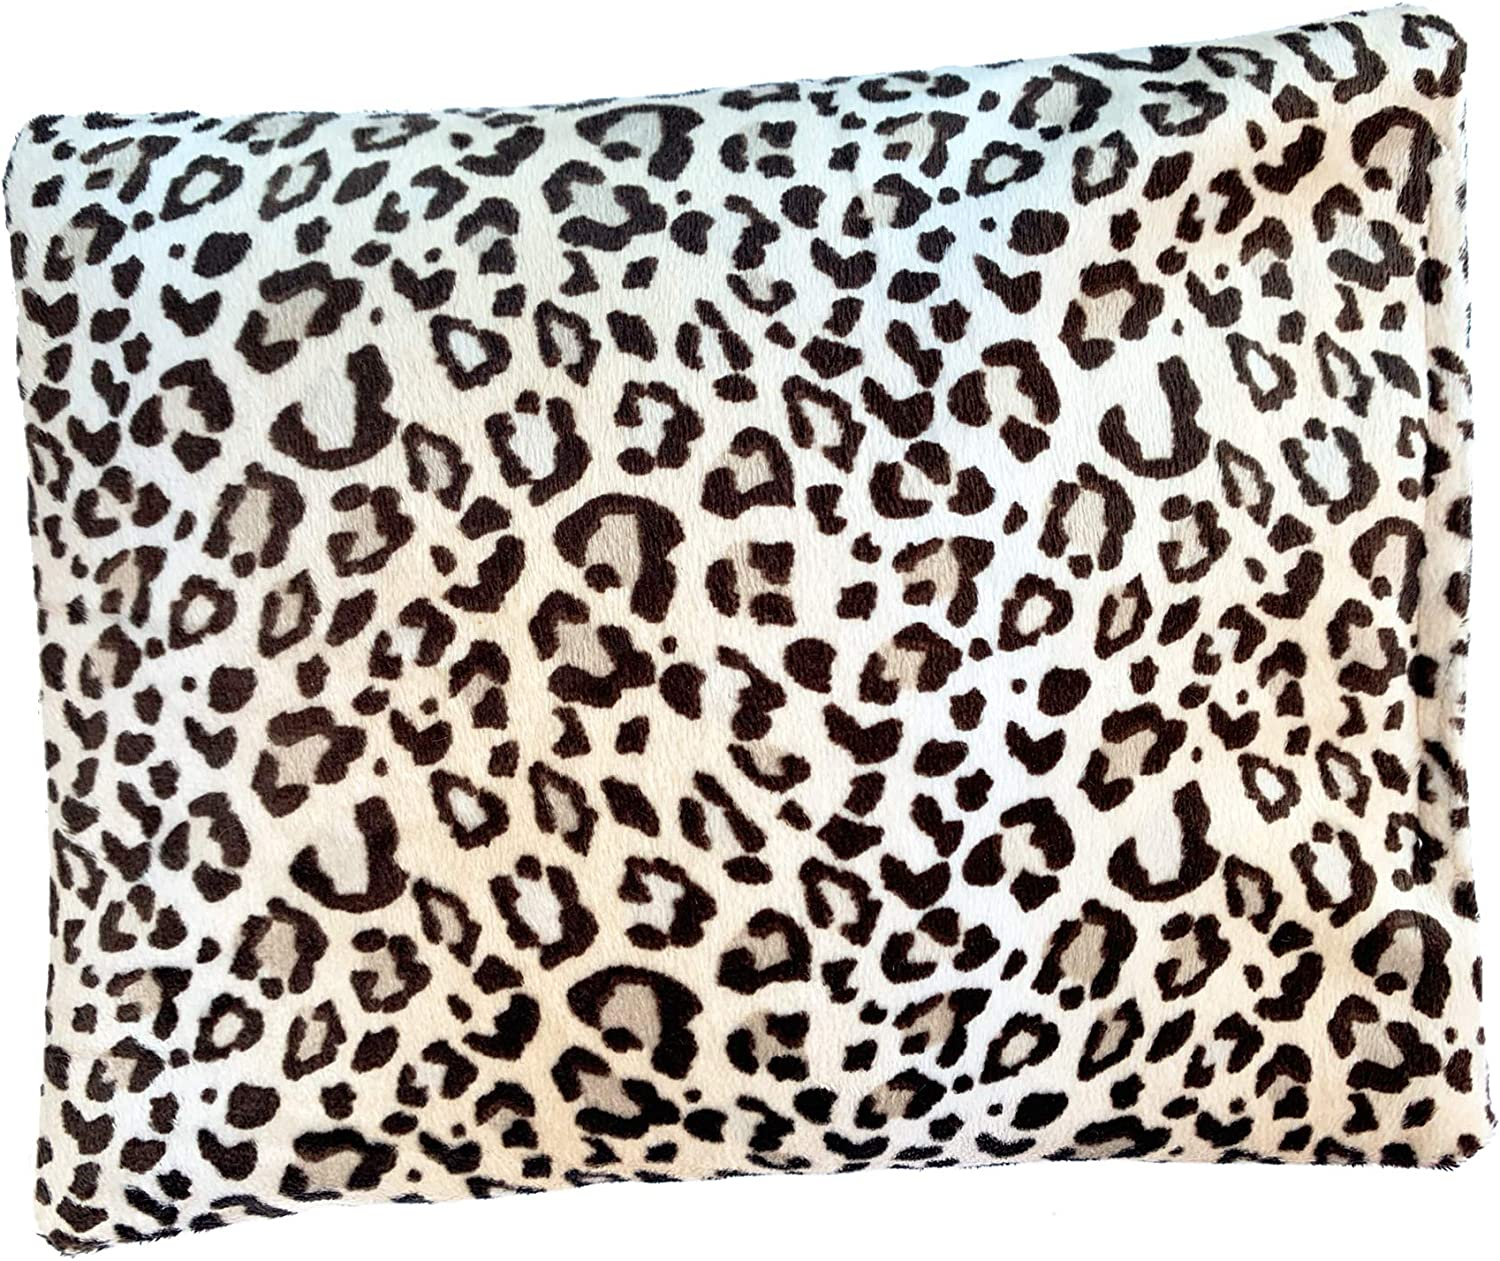 """Solayman's Buckwheat Heating Pad- Leopard 9x7"""" - Moist Heat Therapy Pillow - Cooling and Heating Pads for Back Pain, Joint, Shoulder, Cramps, Muscle Soreness & Migraine Pain Relief"""